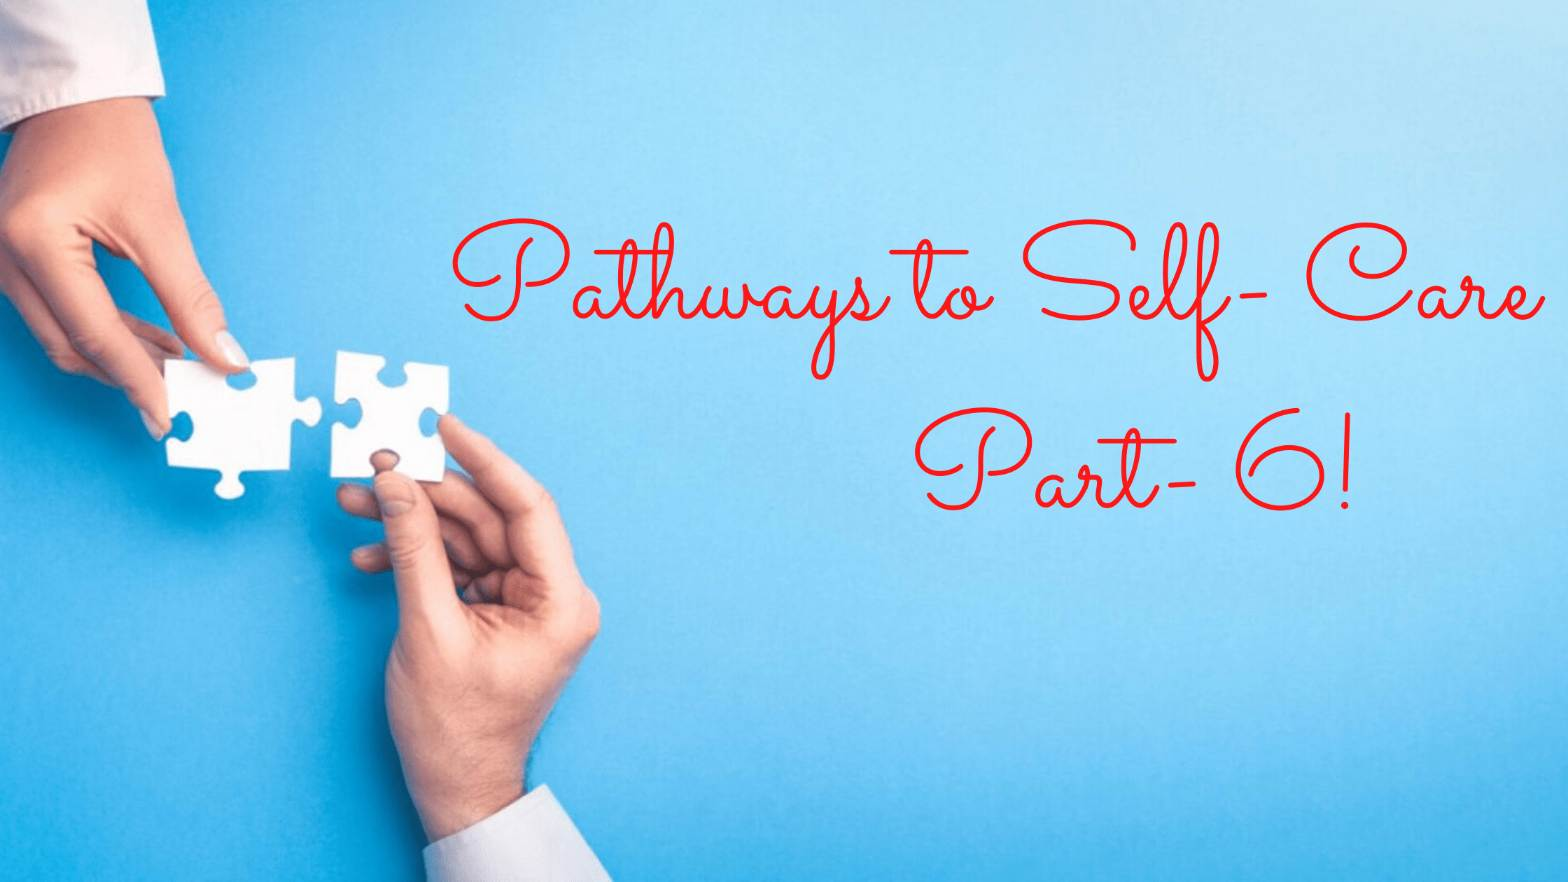 Pathways to selfcare-part6